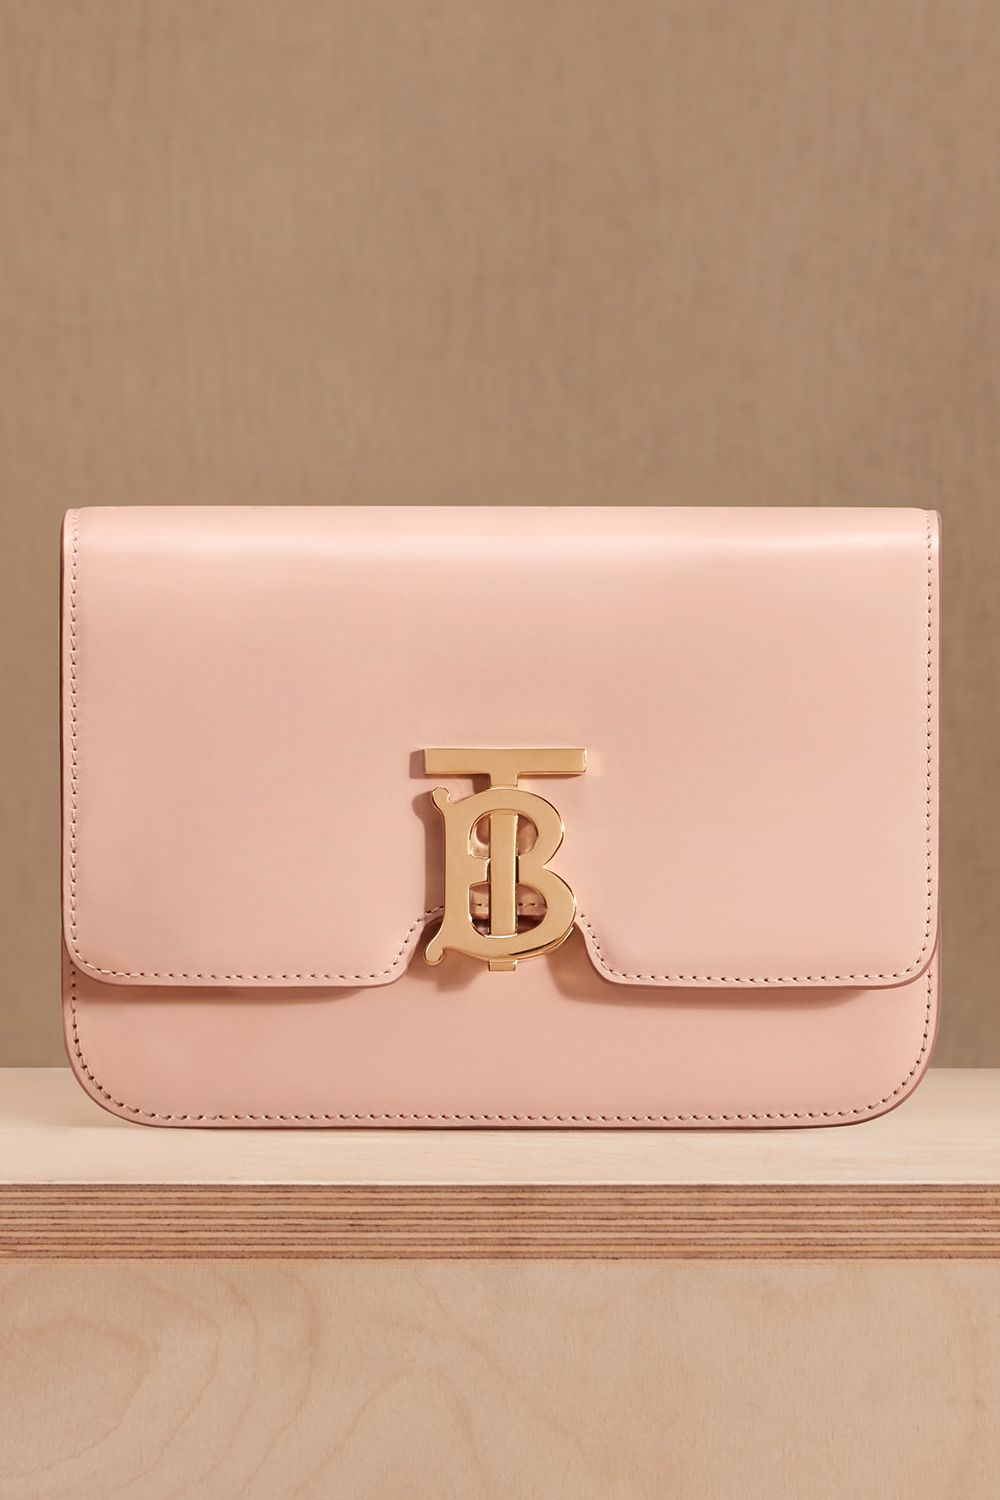 acb3907a1dcb Small Leather TB Bag in Rose Beige - Women in 2019